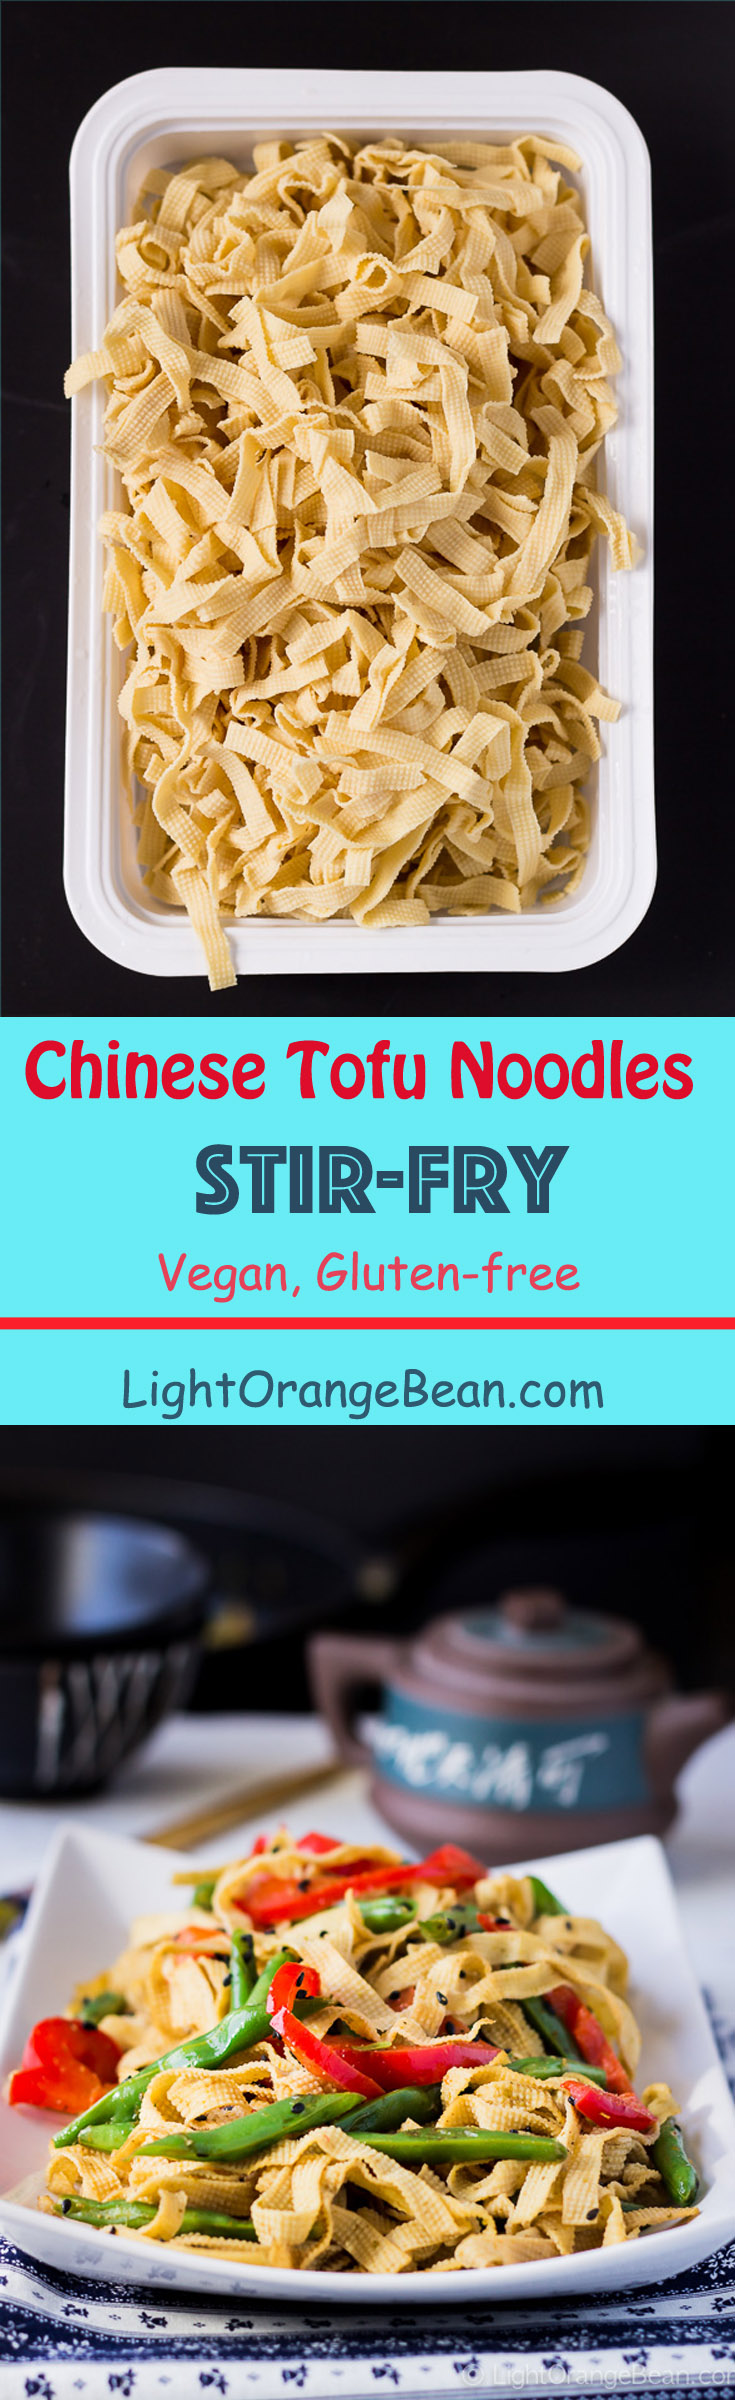 This Chinese tofu noodles stir-fry is a high protein and low carb dish that you can prepare in 10 minutes.  Adding a touch of green curry paste gives this dish a nice kick.(#Chineserecipes #tofurecipes #vegan #glutenfree #glutenfreevegan #Chinesevegan #glutenfreeChinese #plantbased #plantpowered #Chinesestirfry)